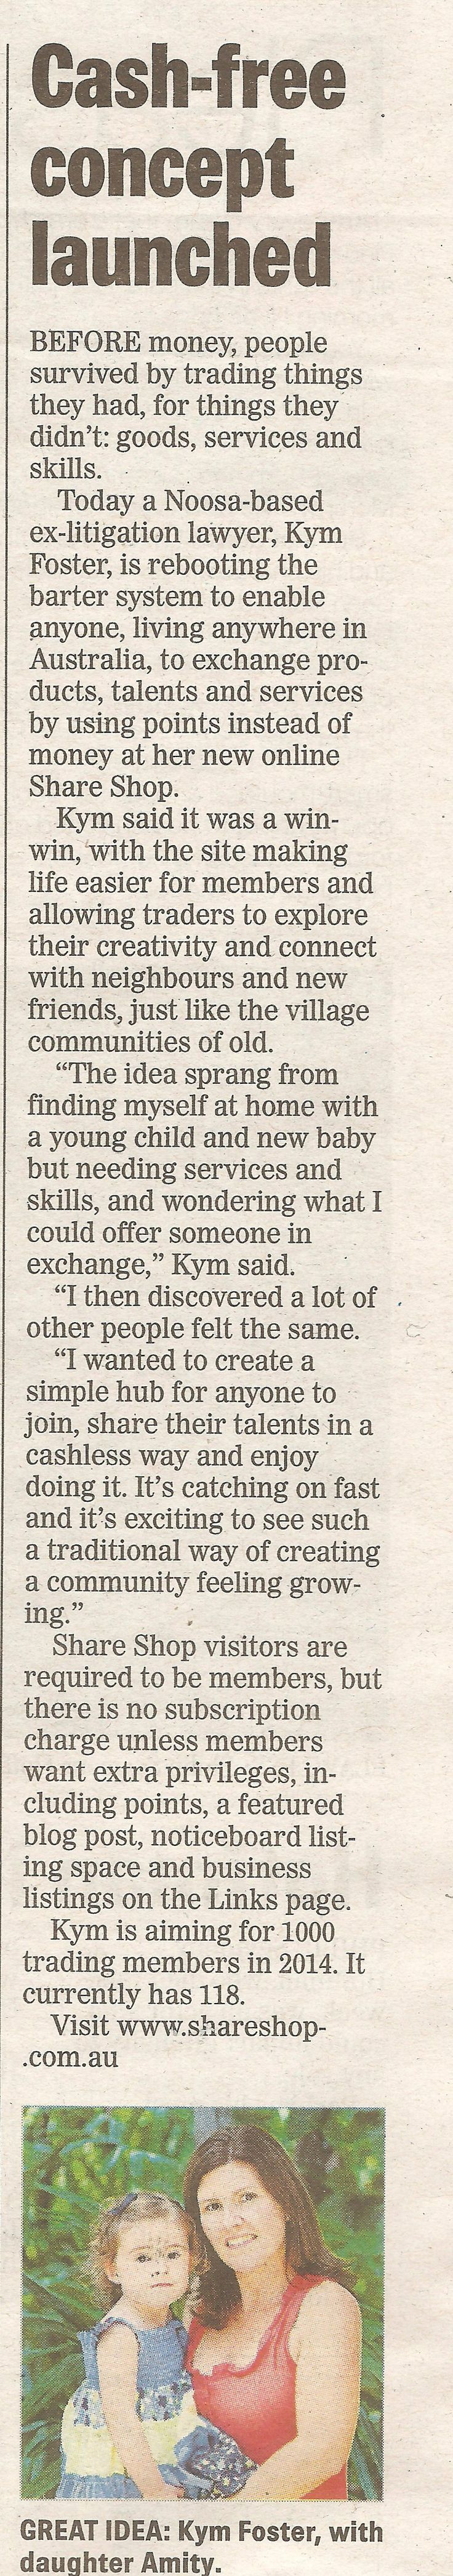 """""""Cash-free concept launched"""" - Share Shop in the Sunshine Coast Daily 11/2/2014"""